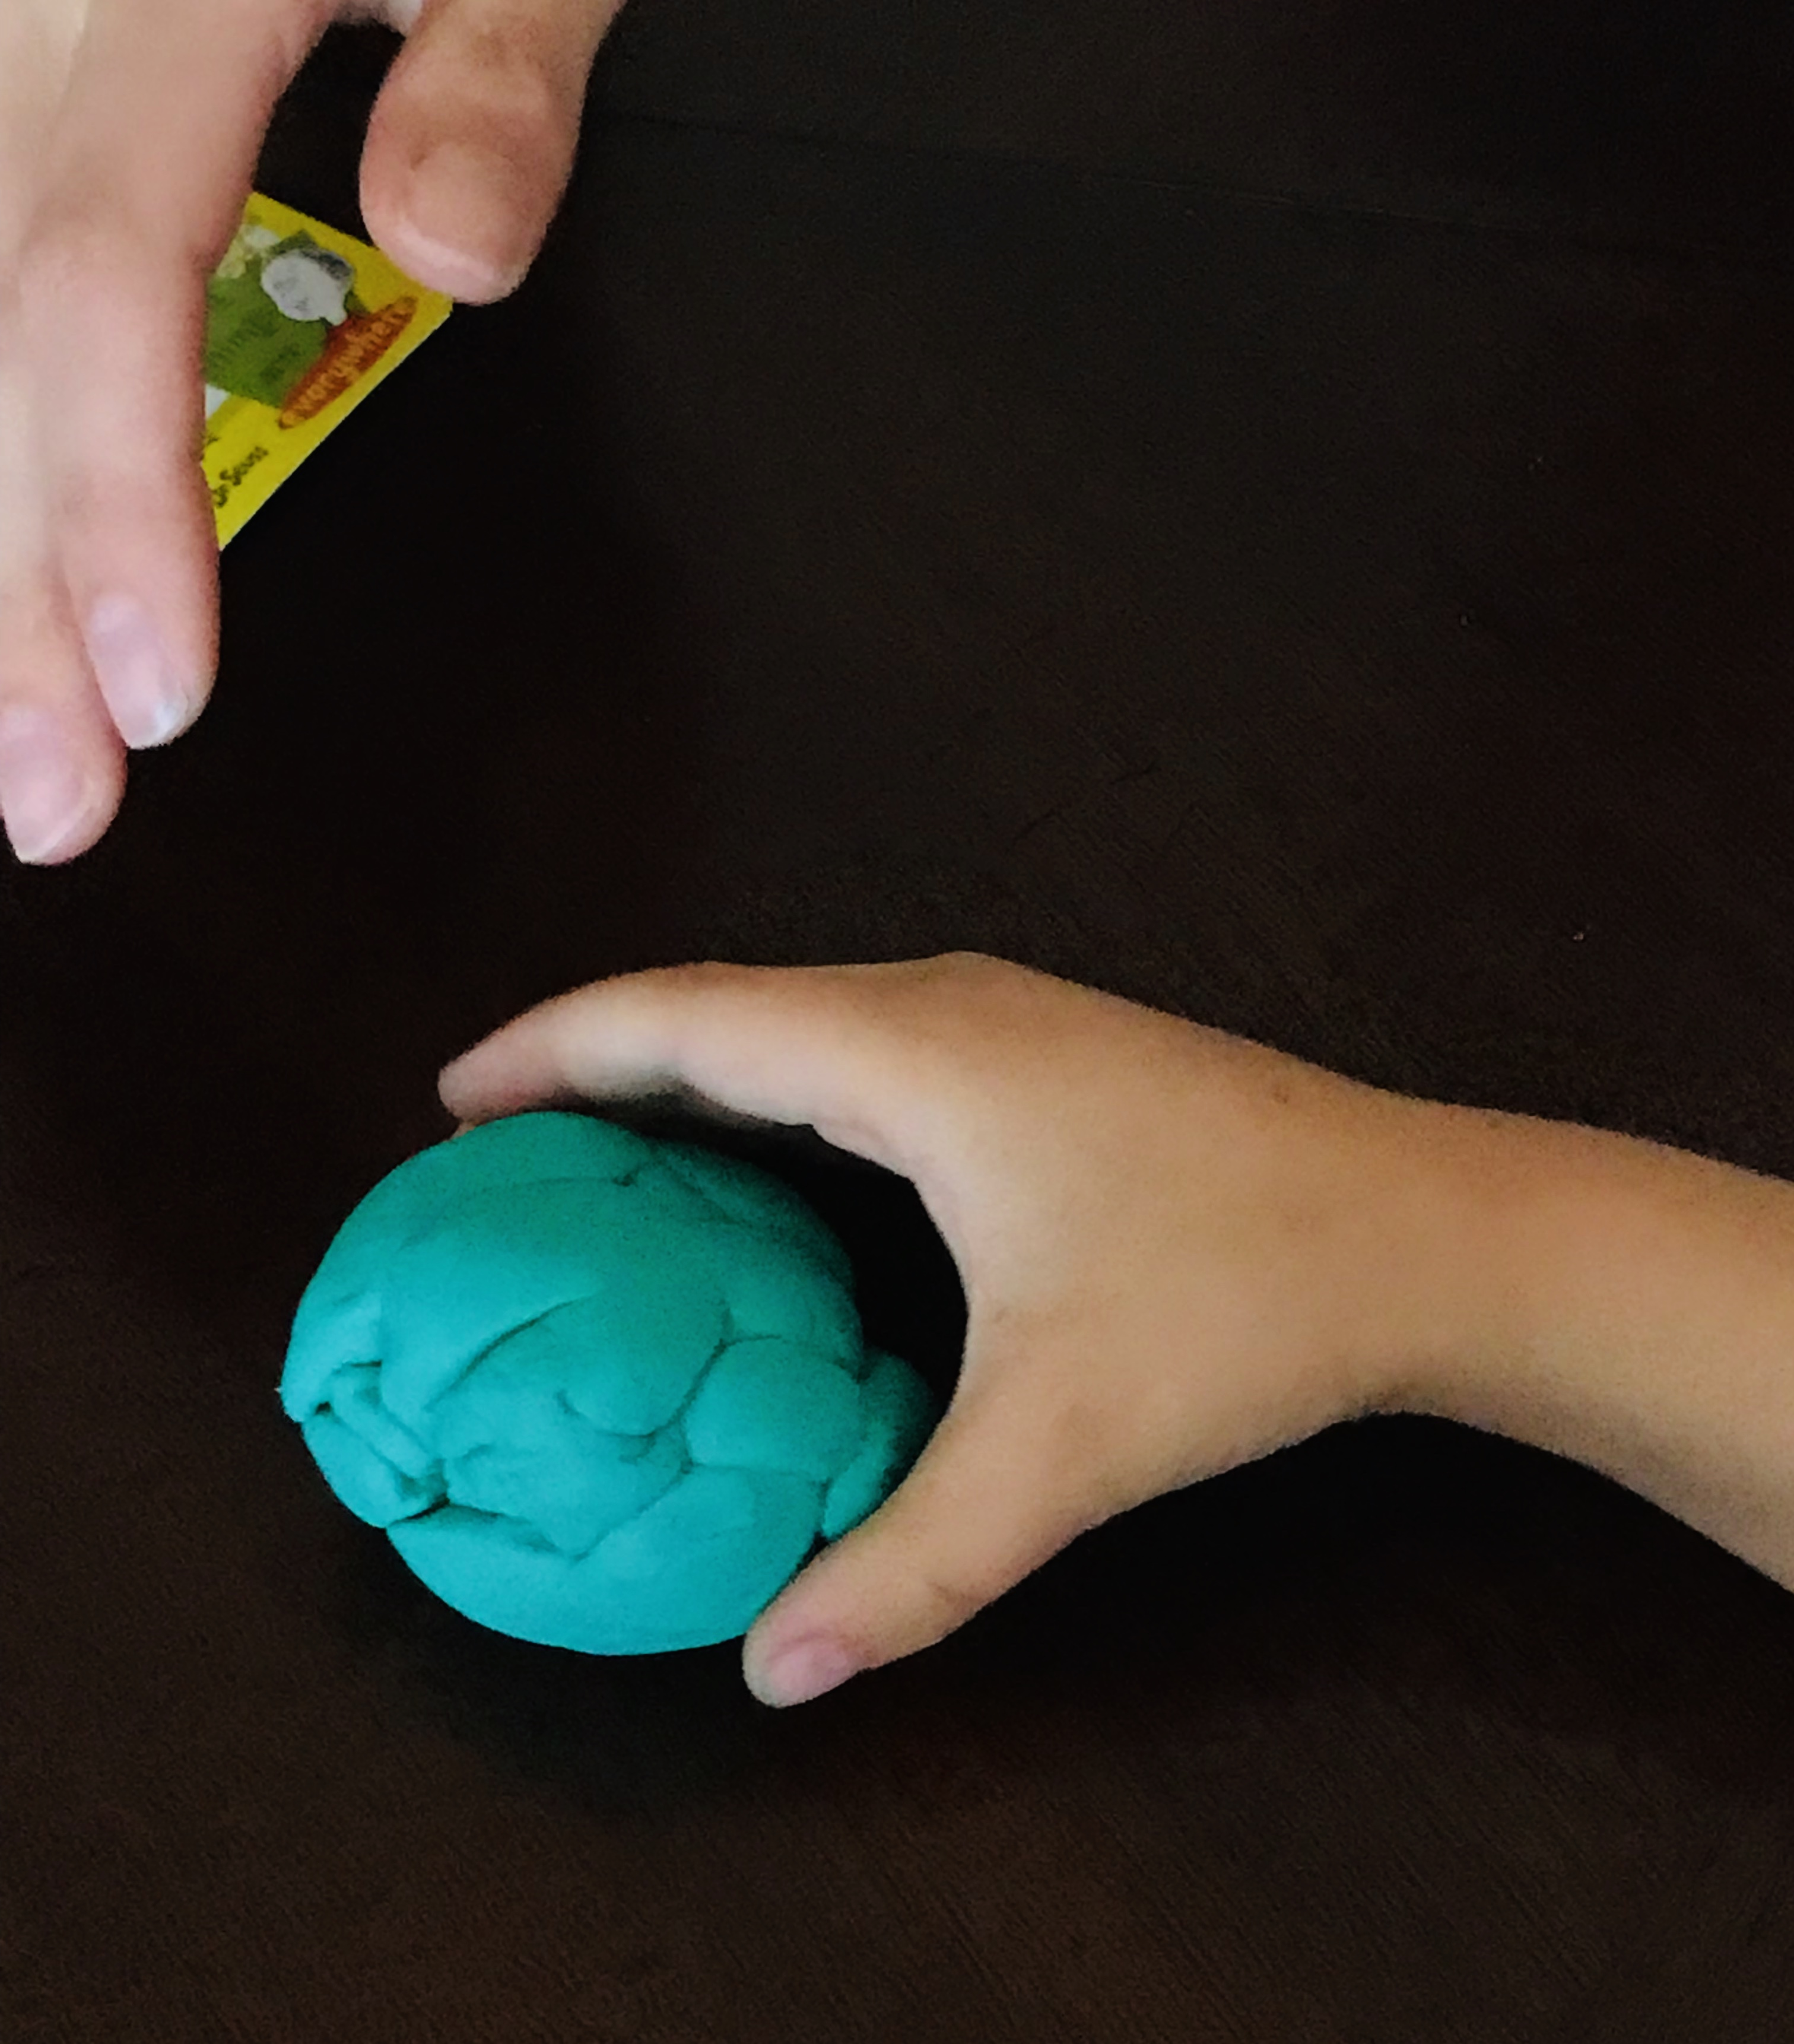 Ball of Play Doh